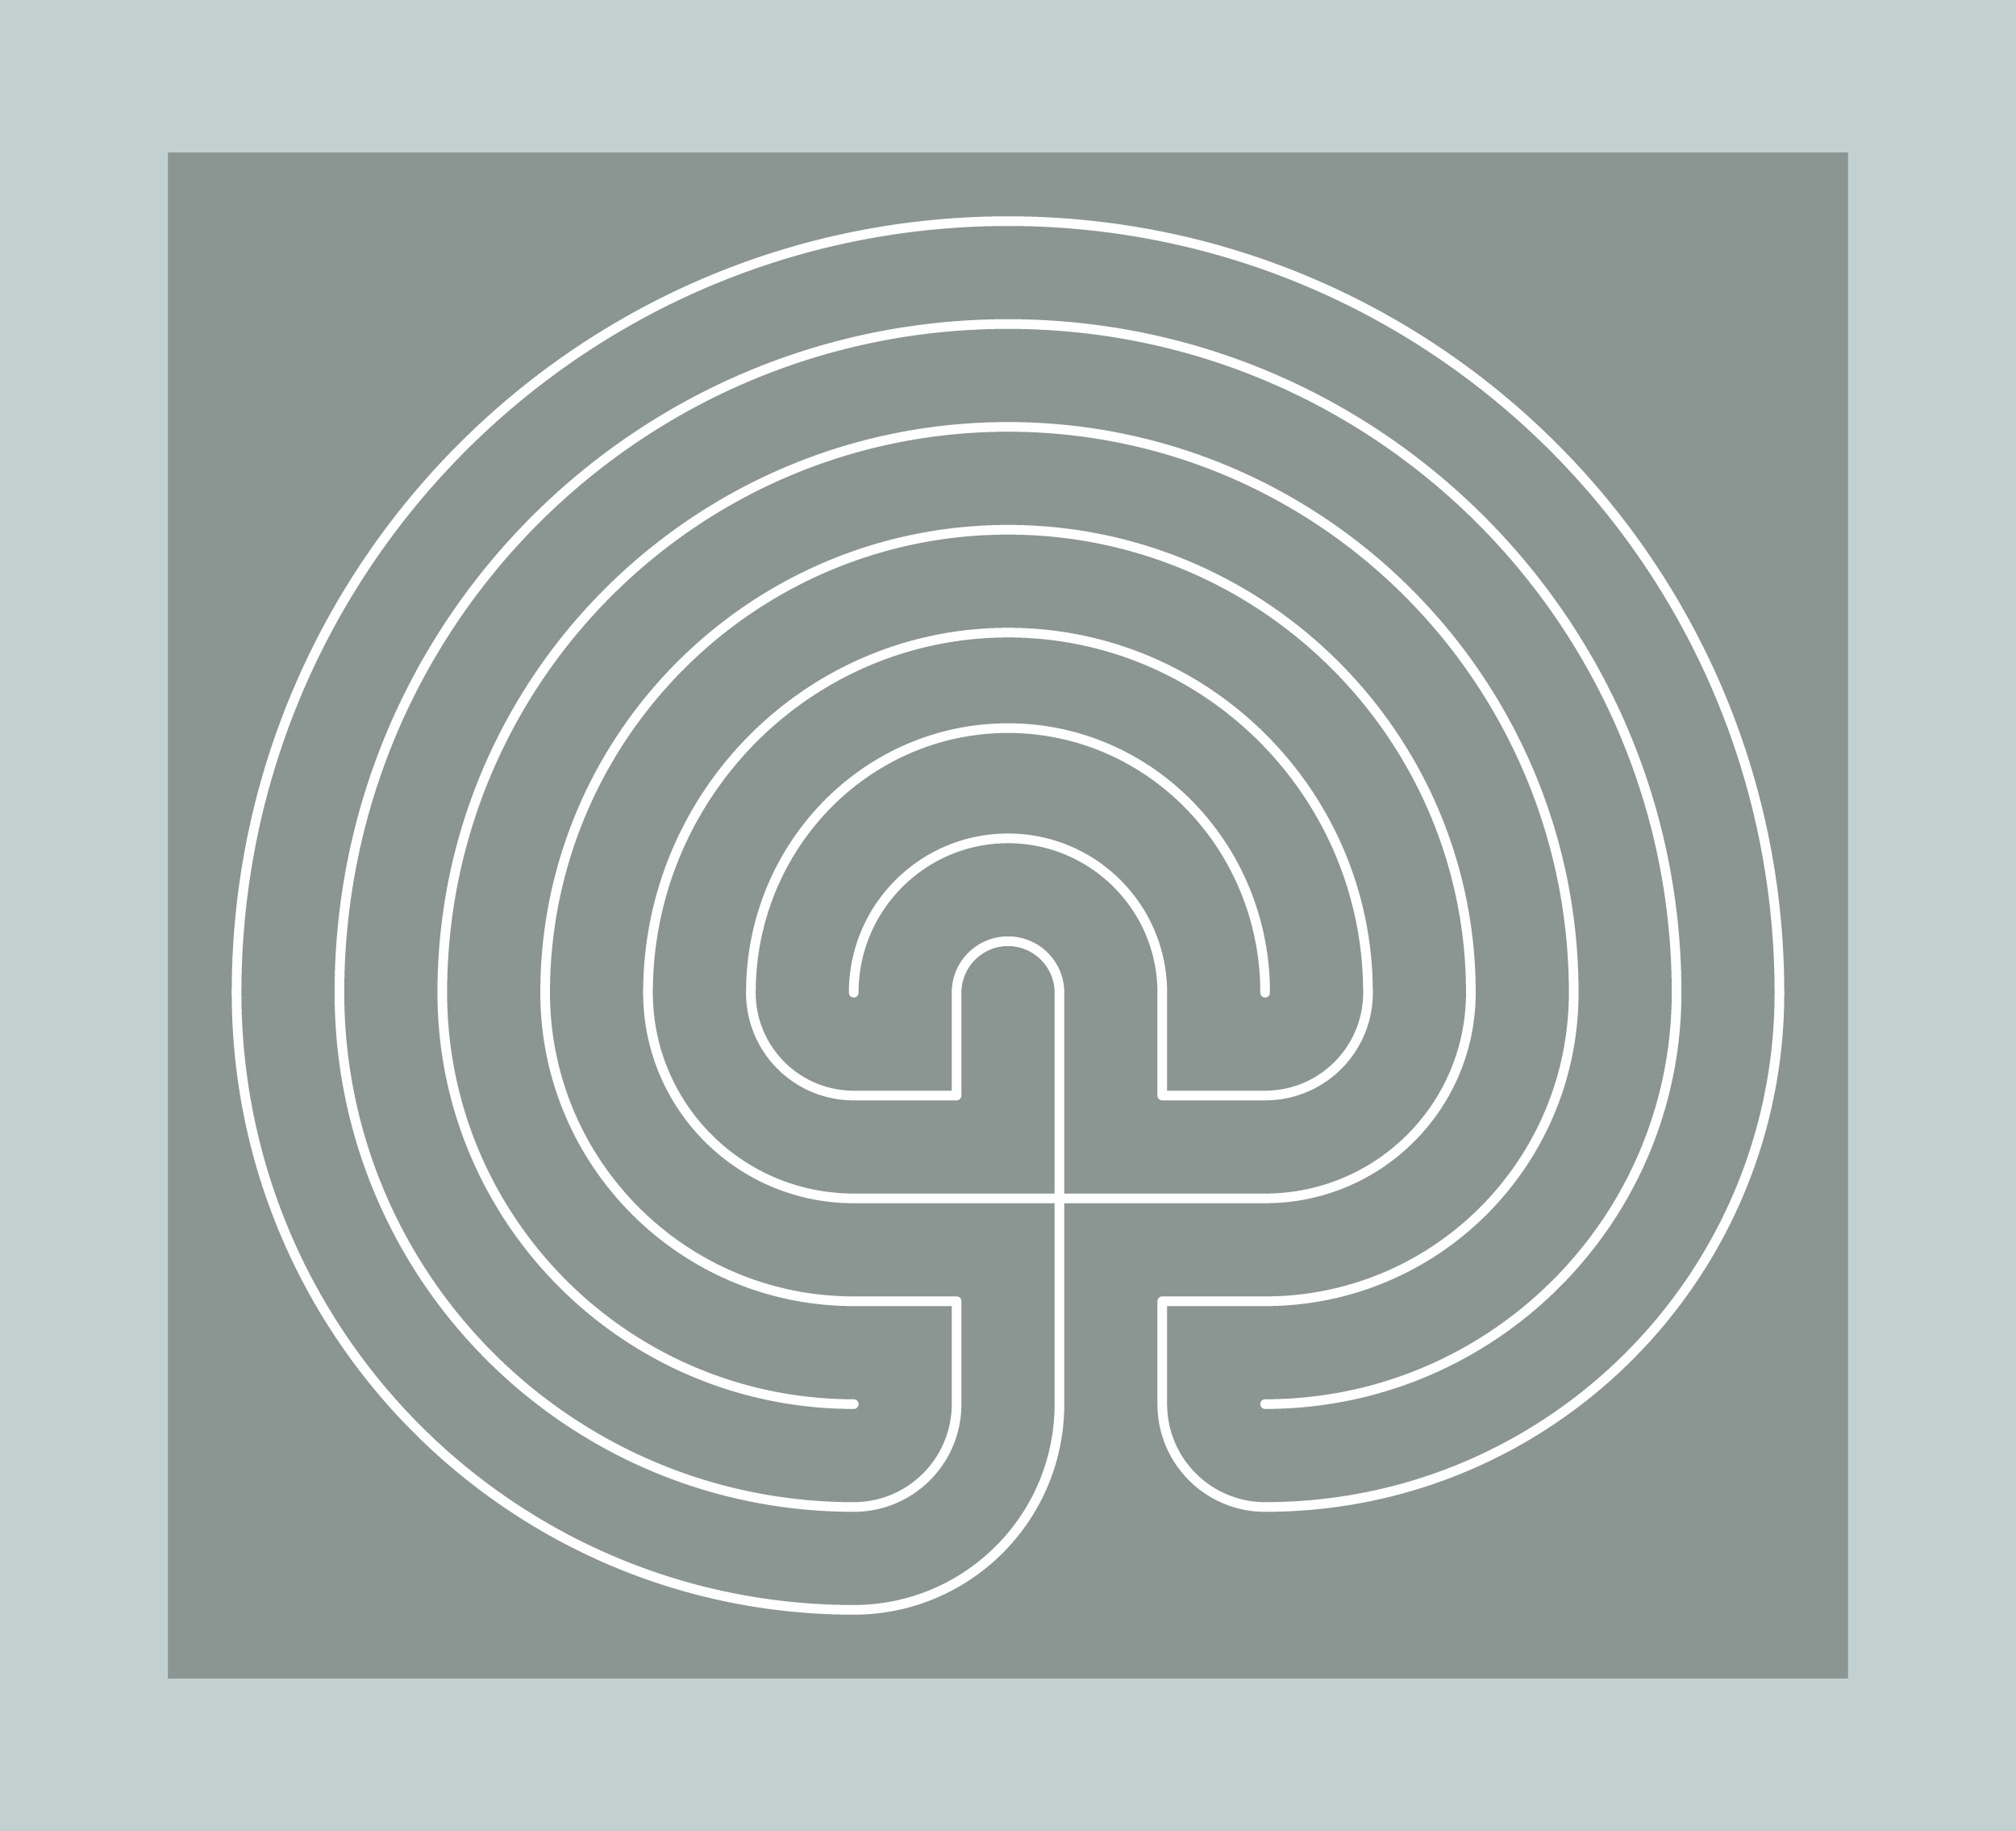 http://upload.wikimedia.org/wikipedia/commons/0/02/Classical_7-Circuit_Labyrinth.jpg